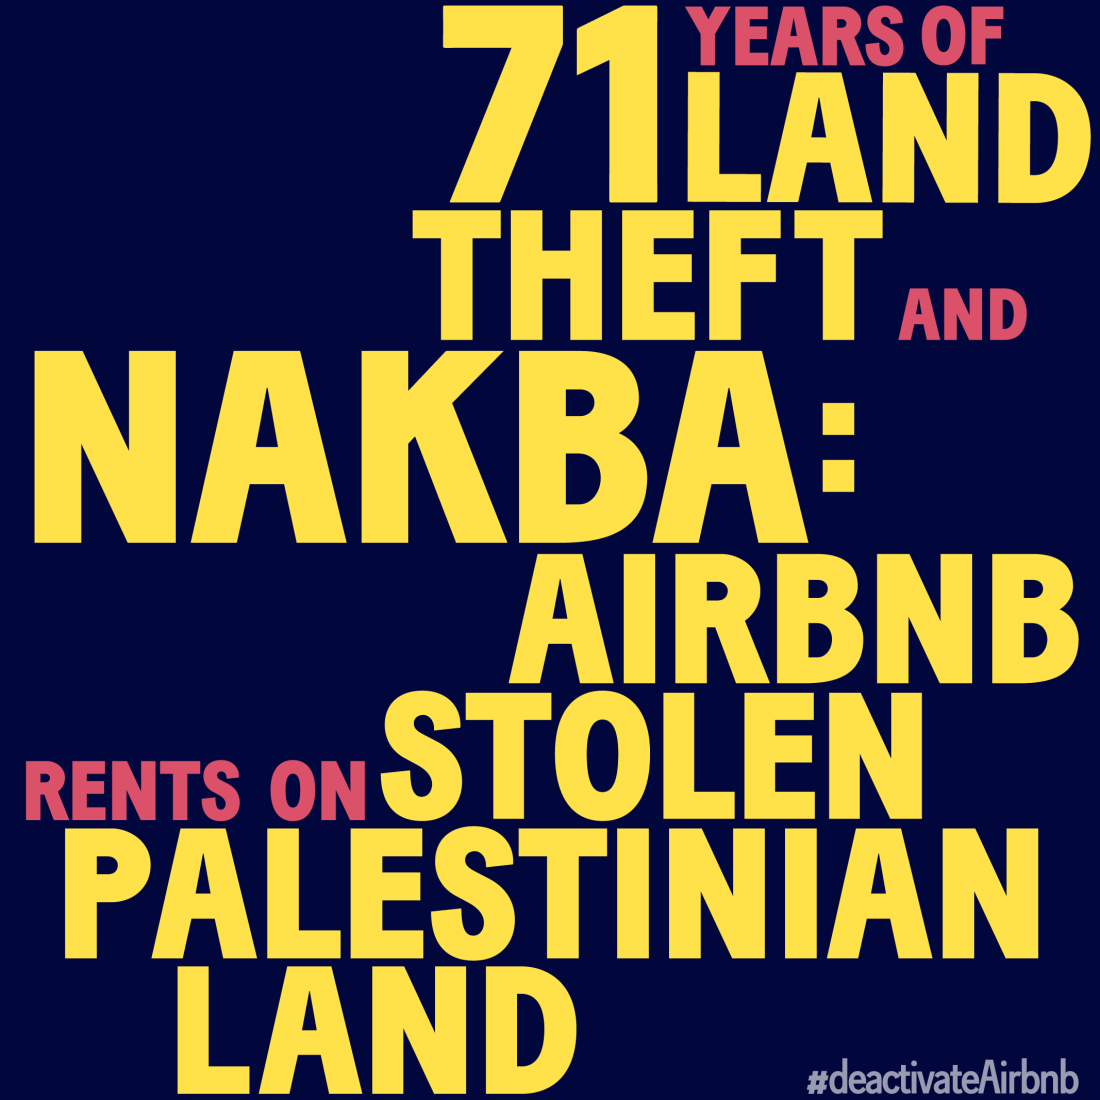 80,000 pledge to deactivate Airbnb for Palestinian rights